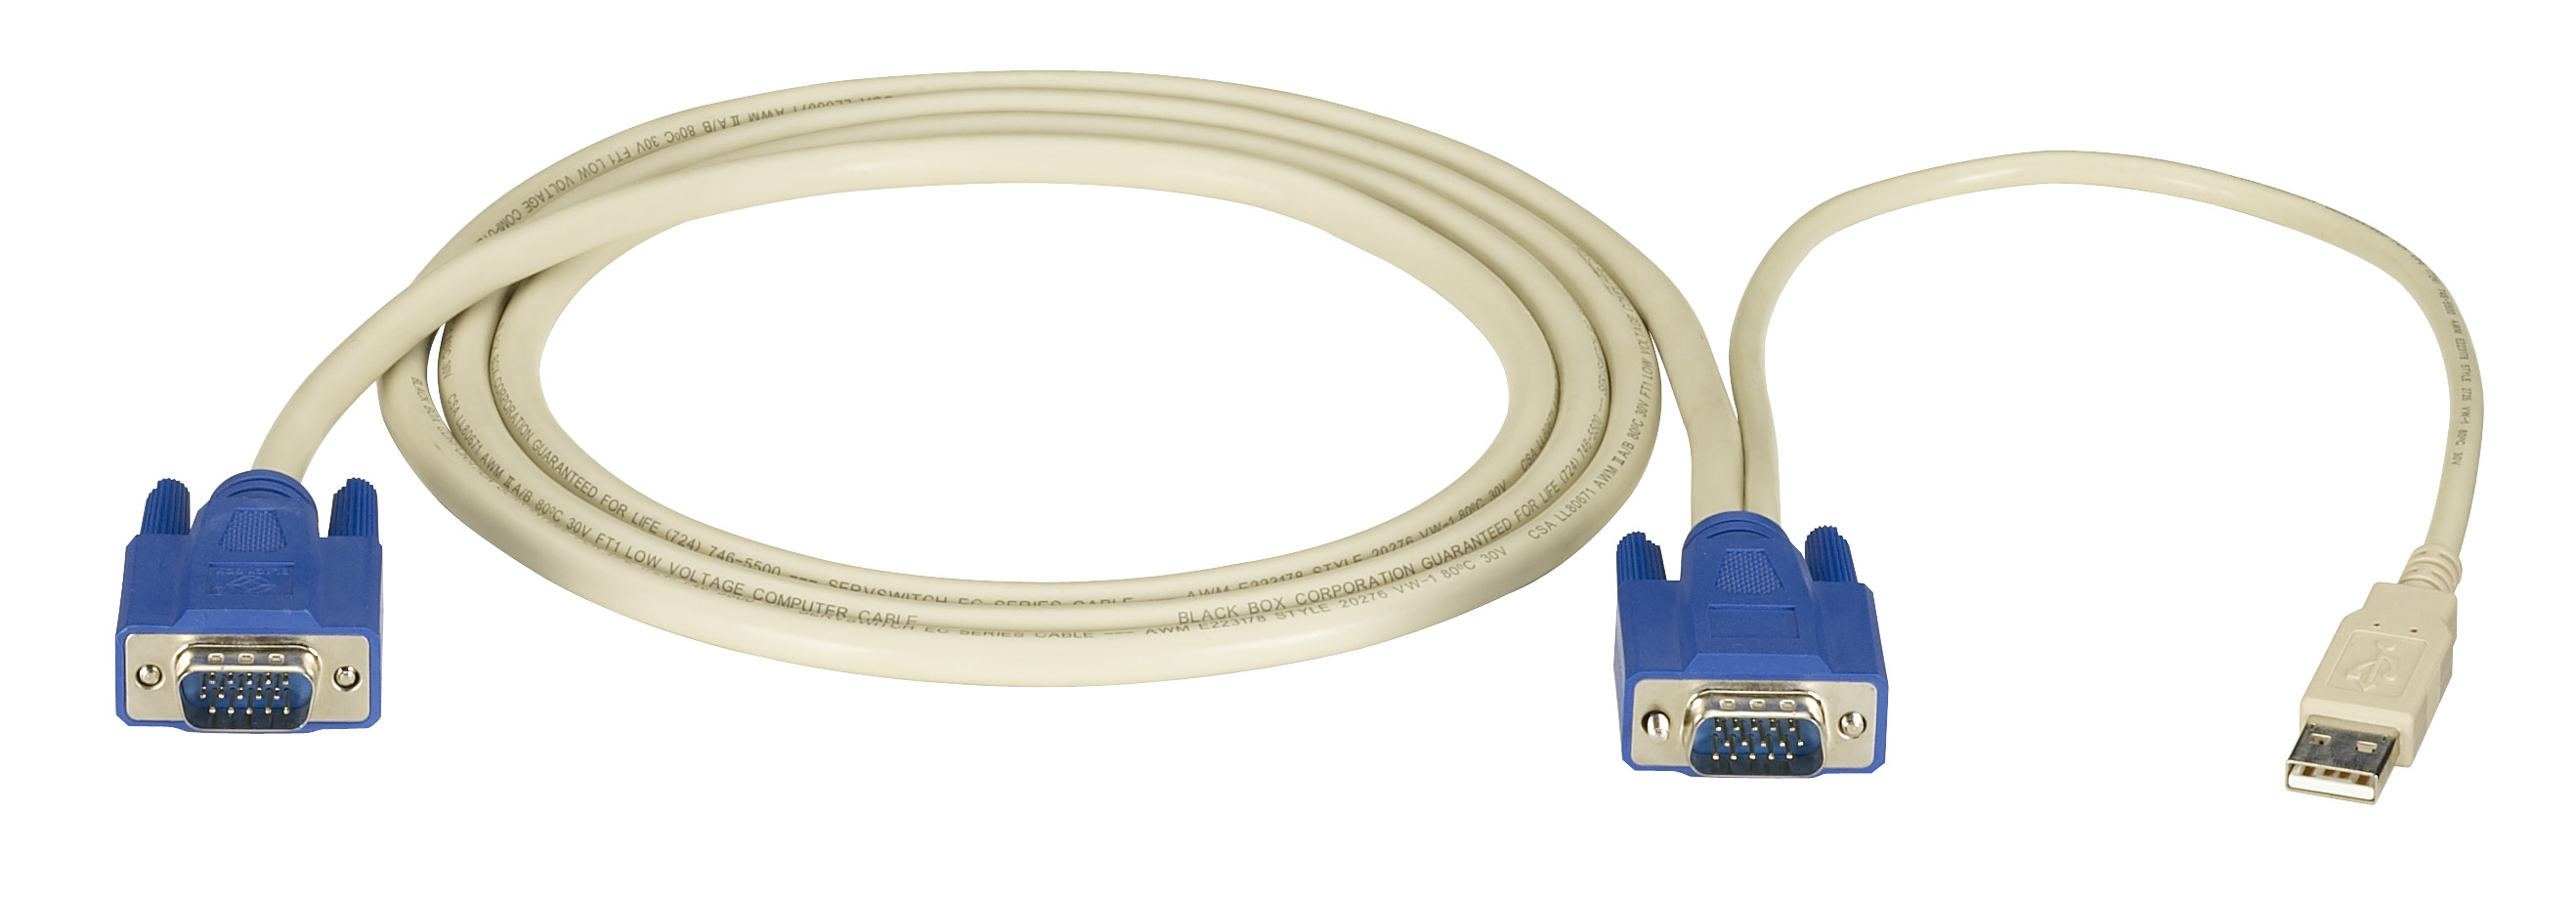 KVM CPU Cable, EC Series, VGA, USB, 6-ft